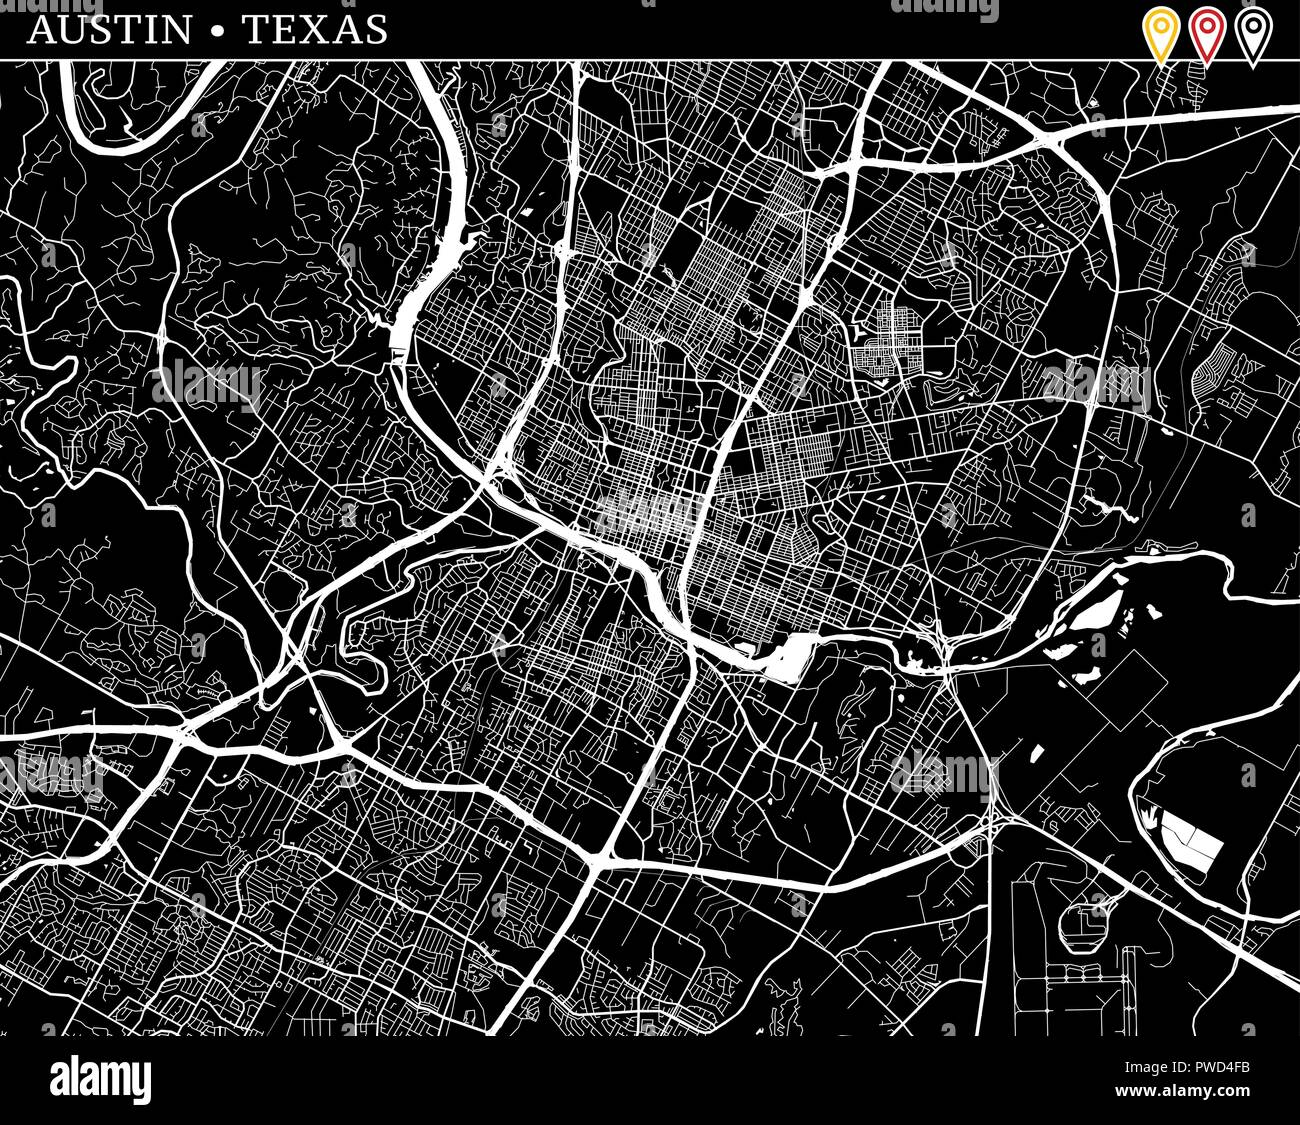 Simple map of Austin, Texas, USA. Black and white version ... on location of rosenberg texas, major aquifers of texas, google austin texas, american bank of texas, the annexation of texas, geographic center of texas, dallas texas, relative location of texas, geographical id texas, city of rosenberg texas, temperature austin texas, missions of texas, city of manor texas, austin city limits map texas, lakes of texas, 3d physical map texas, printable maps north texas, is there desert in texas, black and white state of texas, stuff about texas,